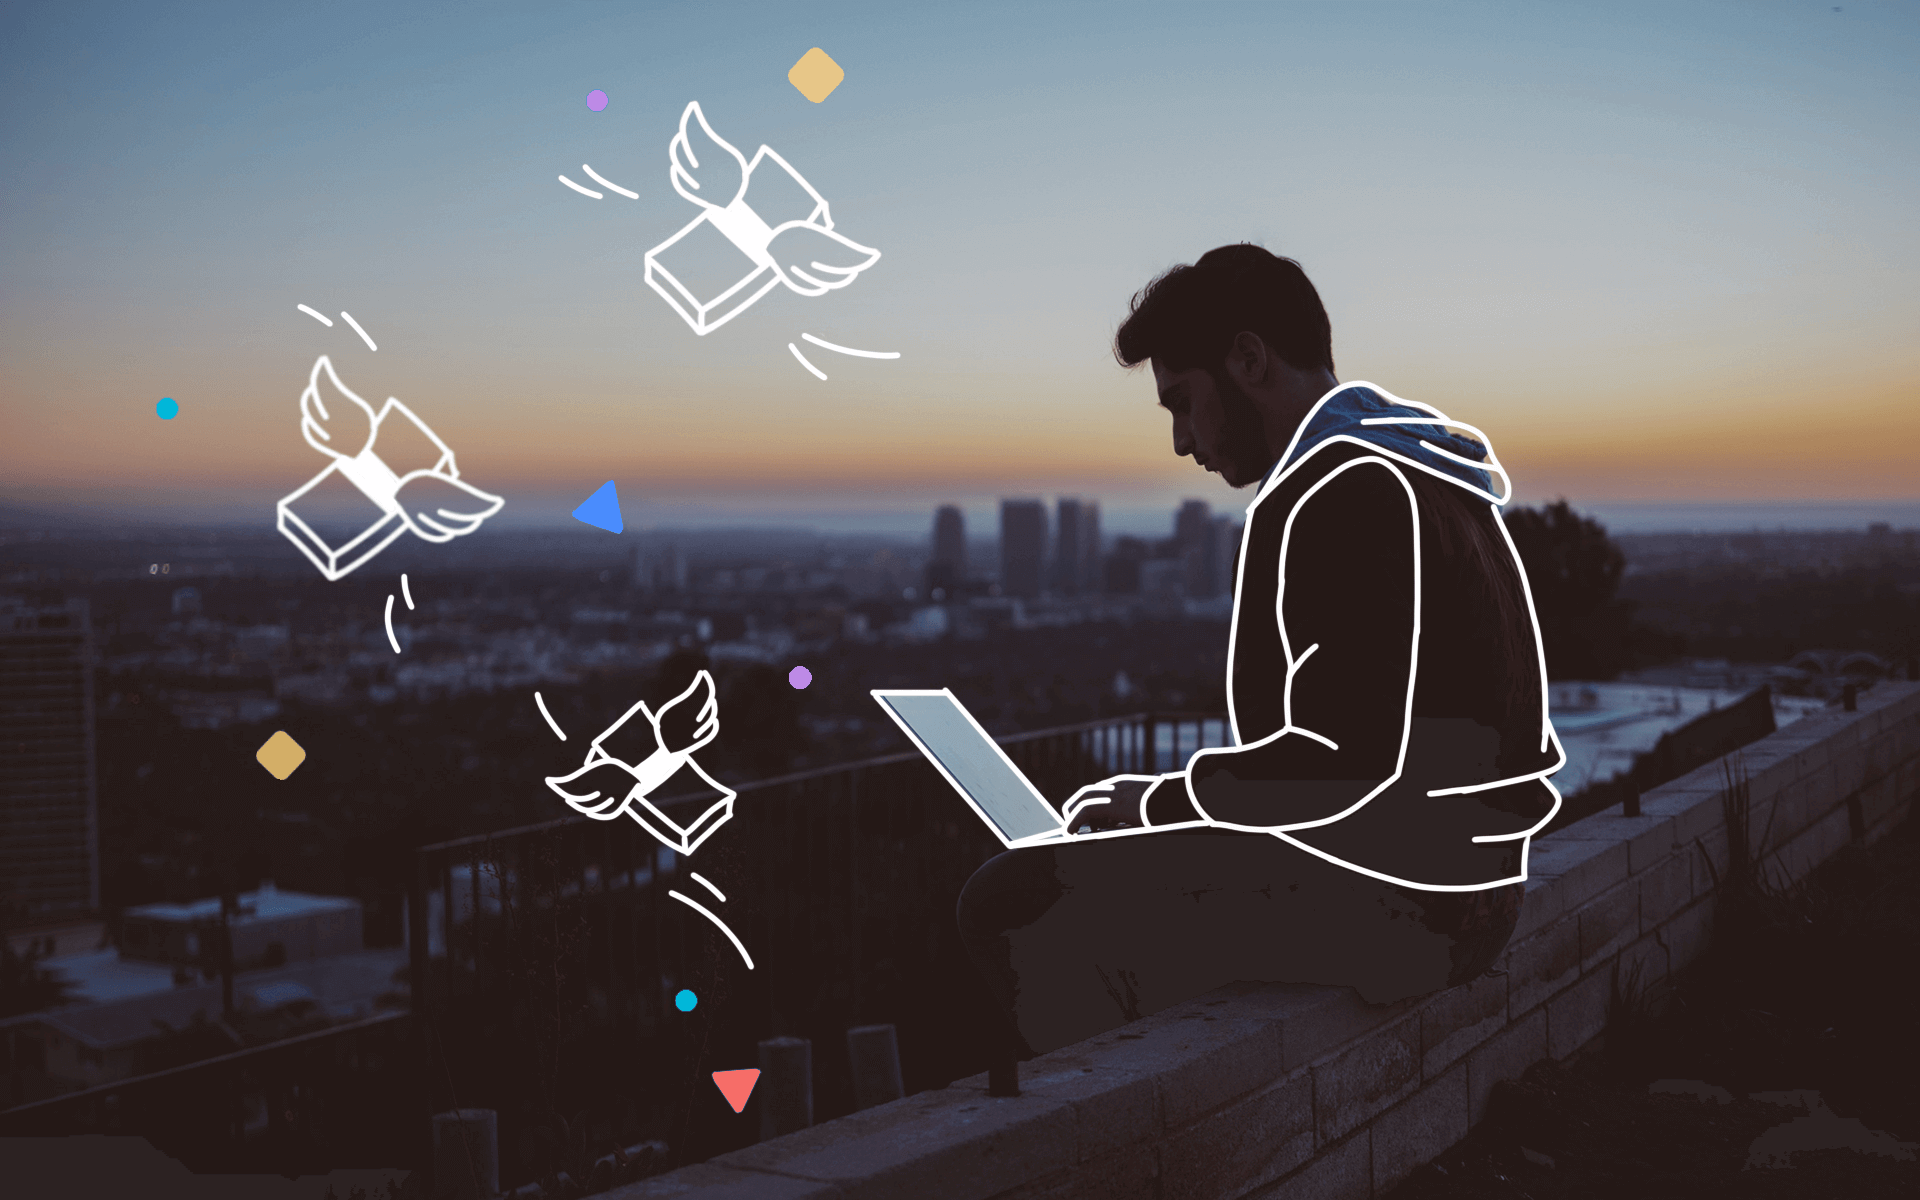 How to make money on fiverr header presenting a working freelancer on a rooftop with a city landscape at night.